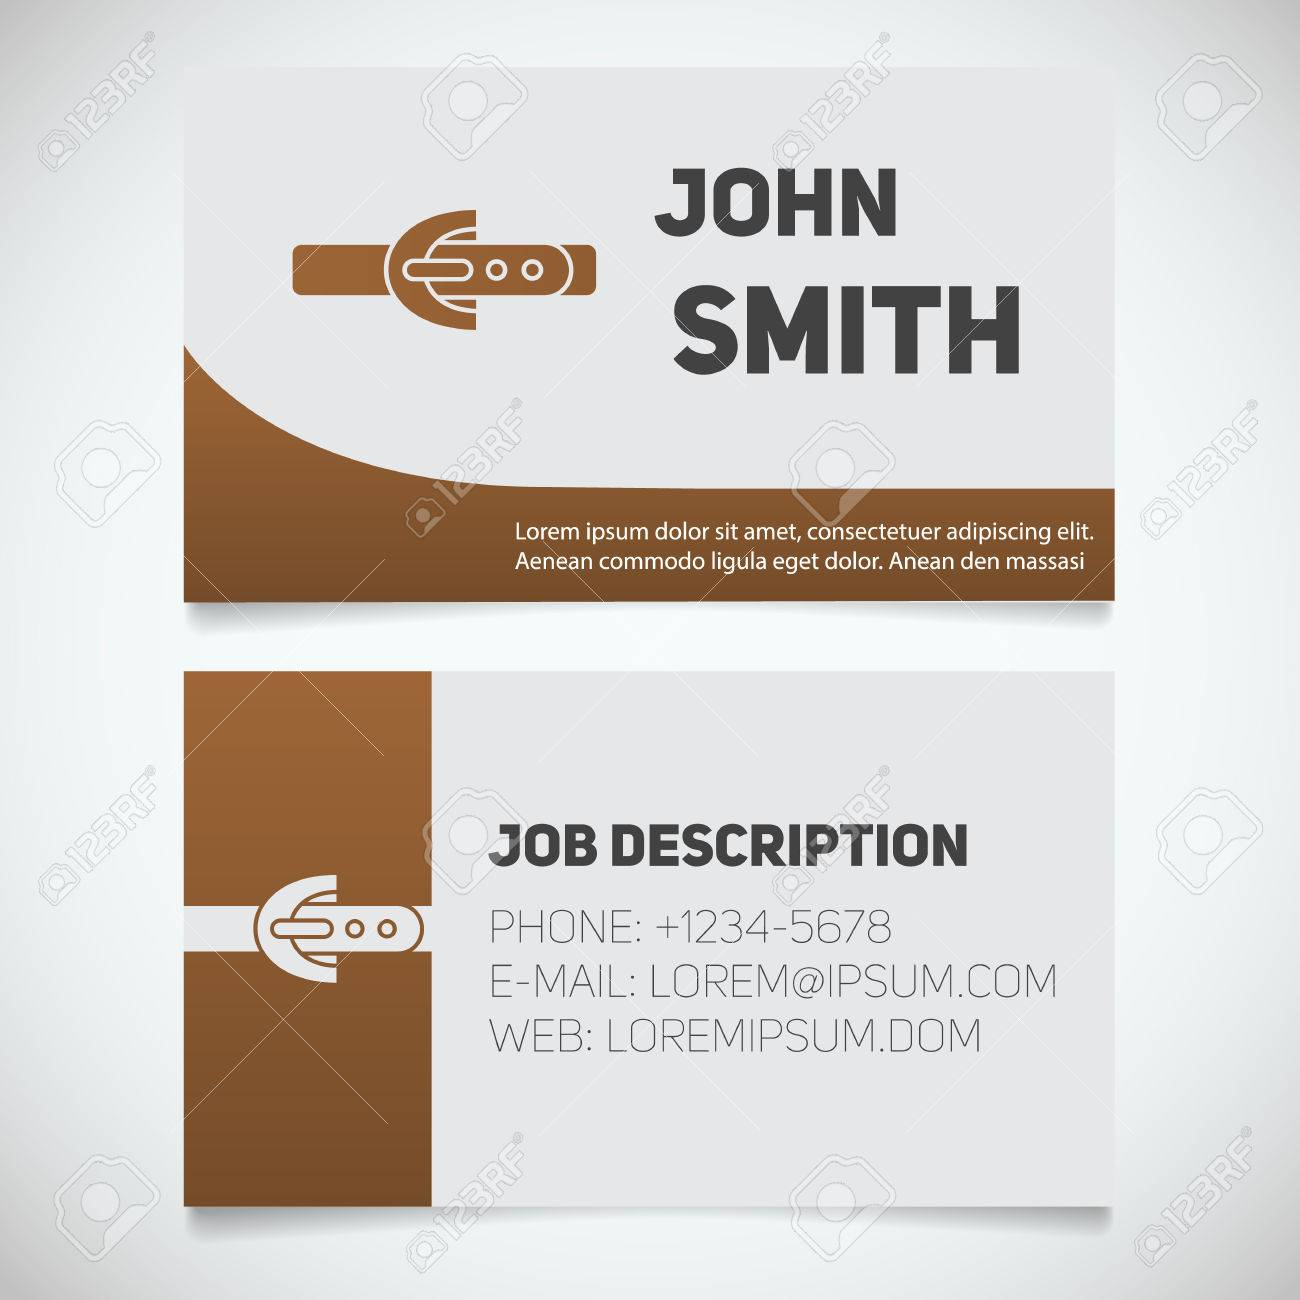 Mr Print Com Business Cards Choice Image - Card Design And Card Template